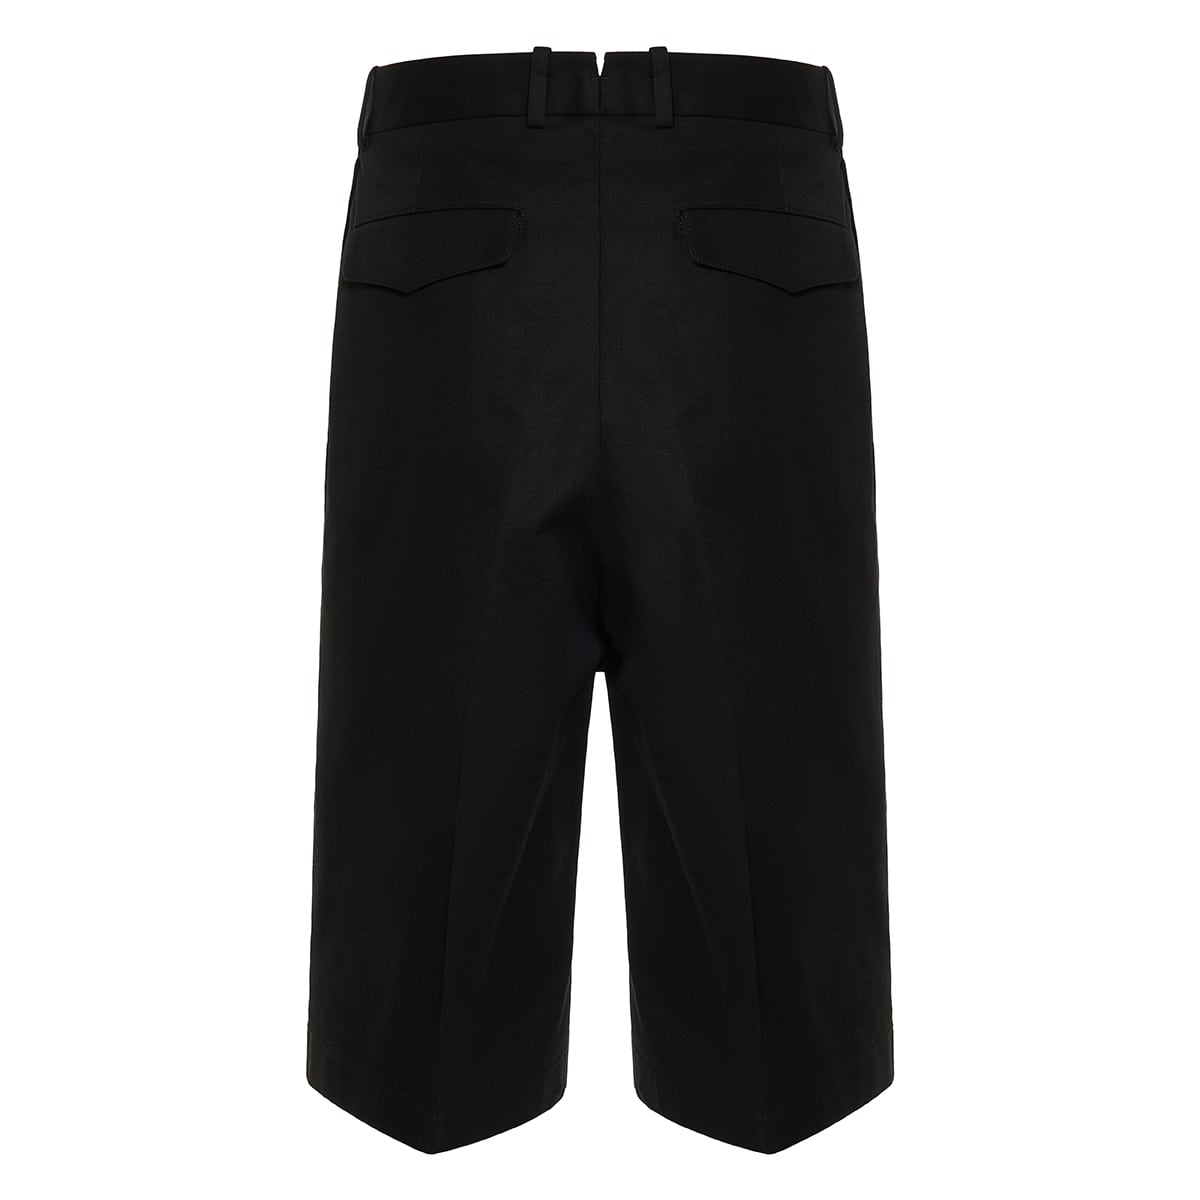 Baggy long tailored shorts